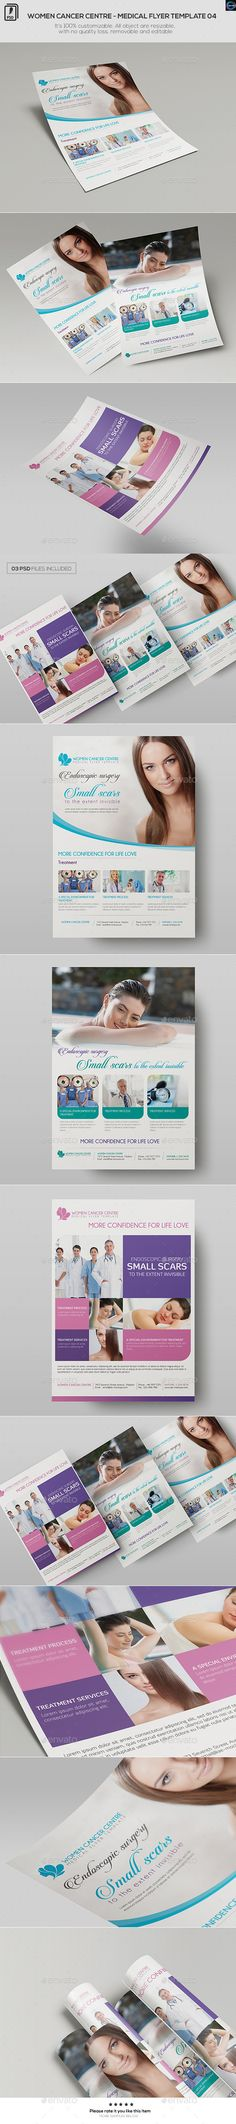 Job Fair Event Flyer #GraphicRiver JOB FAIR EVENT FLYER FEATURES 1 ...